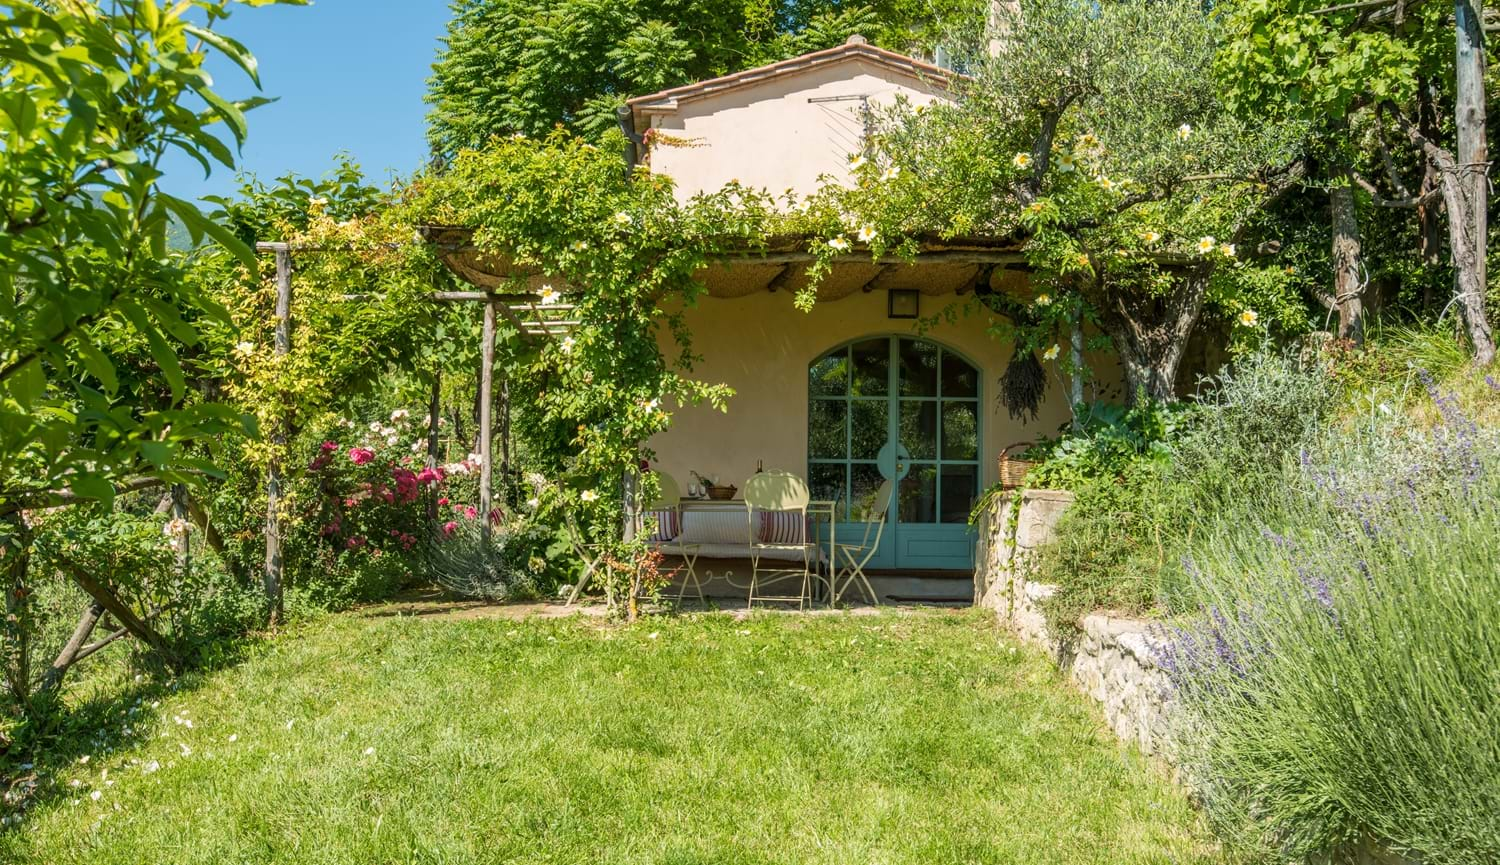 grassed garden with trees and villa Villa La Torretta